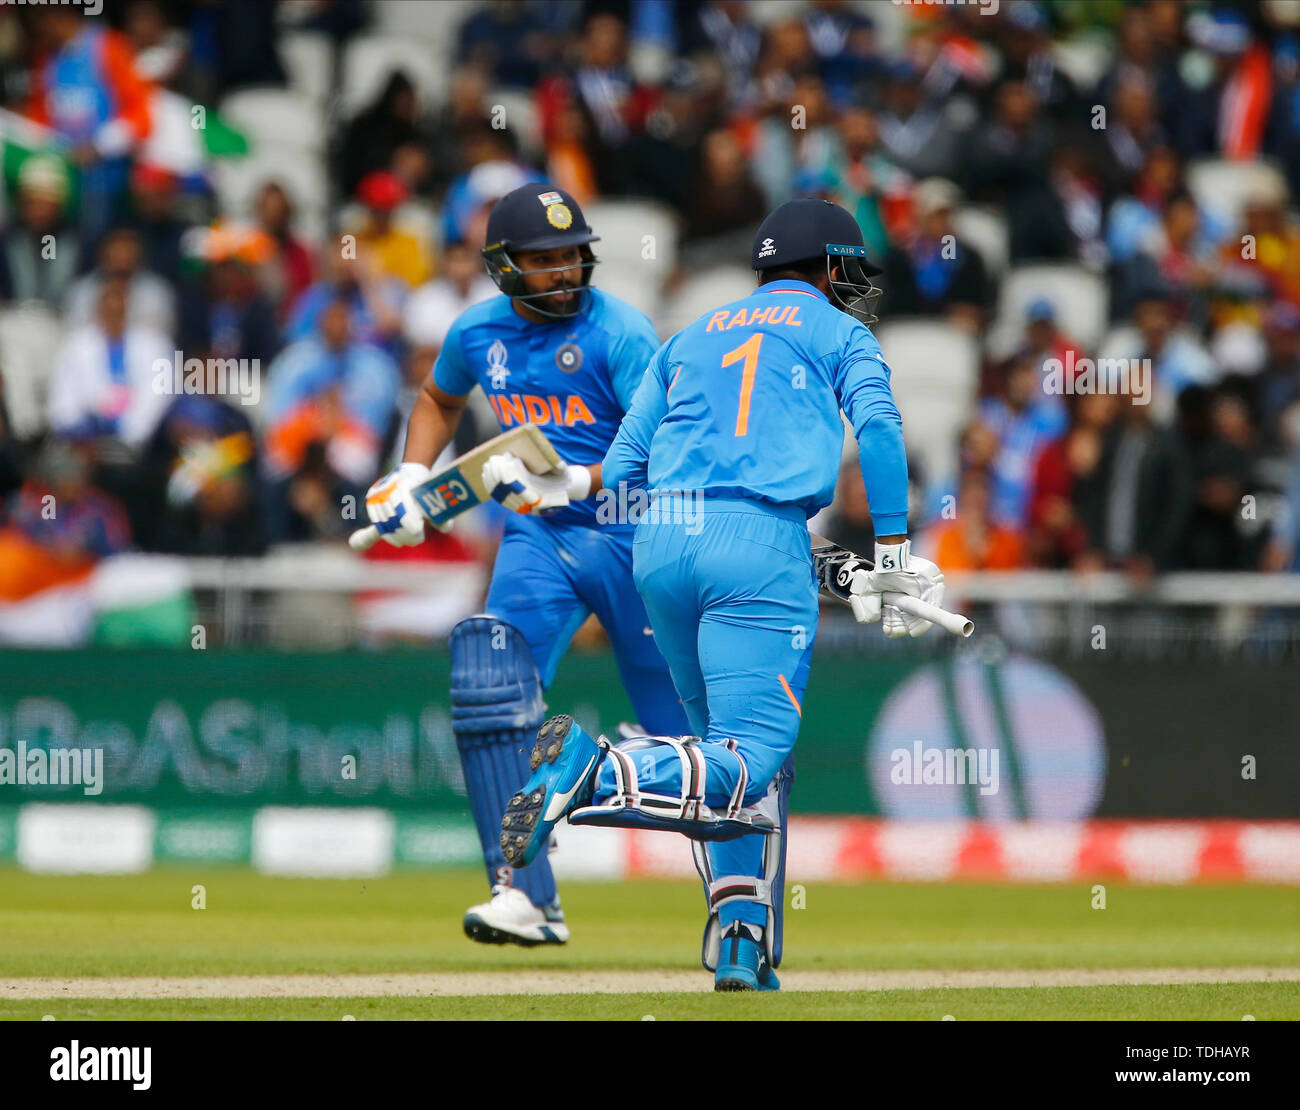 Old Trafford, Manchester, UK. 16th June, 2019. ICC World Cup Cricket, India versus Pakistan; KL Rahul and Rohit Sharma of India celebrate their century opening wicket partnership Credit: Action Plus Sports/Alamy Live News Stock Photo